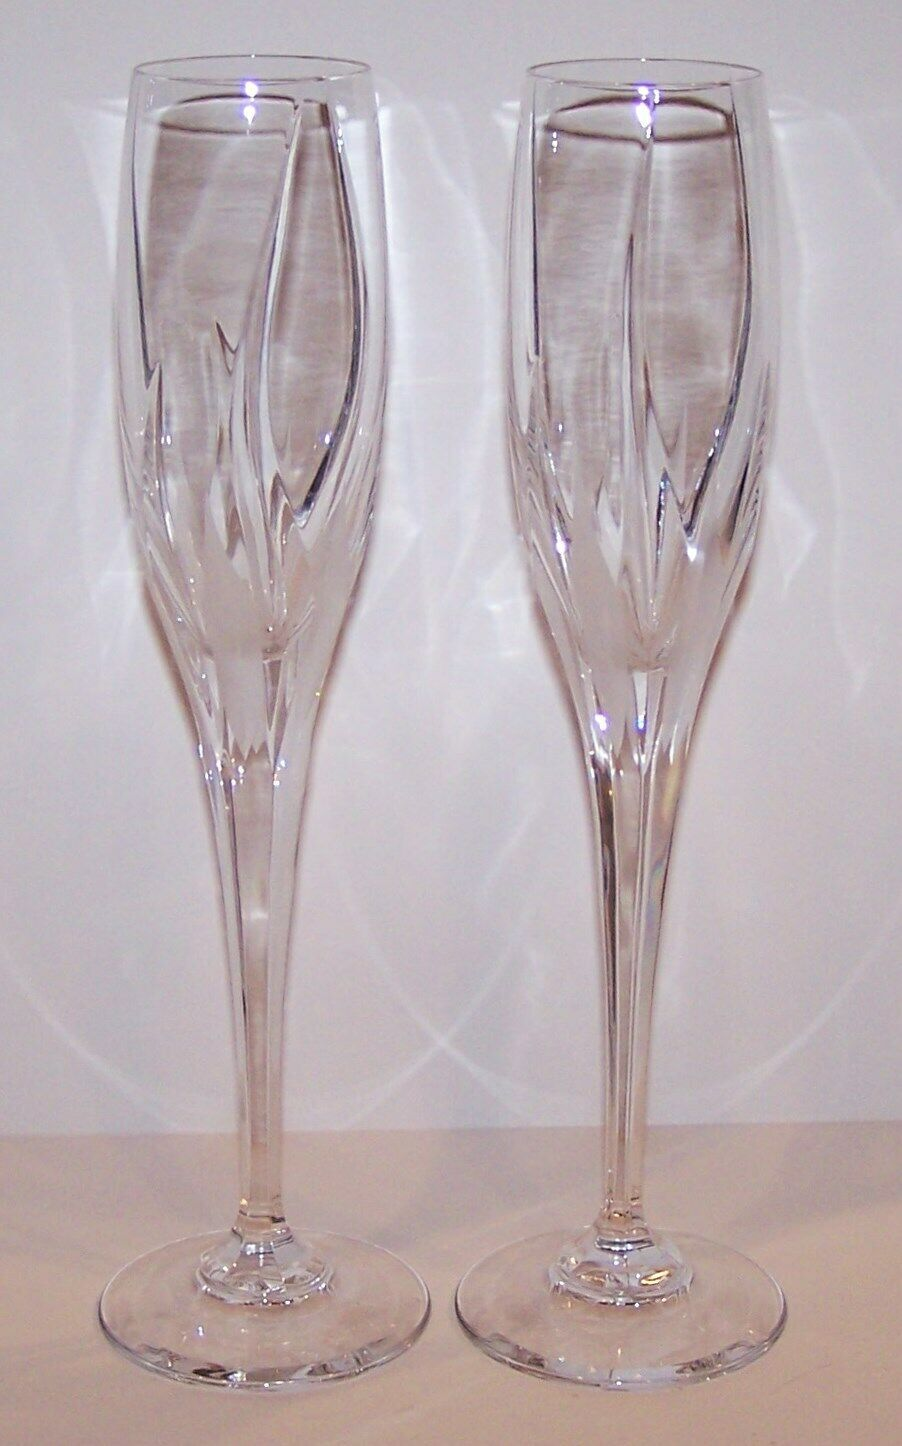 "STUNNING PAIR OF MIKASA CRYSTAL FLAME D'AMORE 10 3/4"" CHAMPAGNE FLUTES"